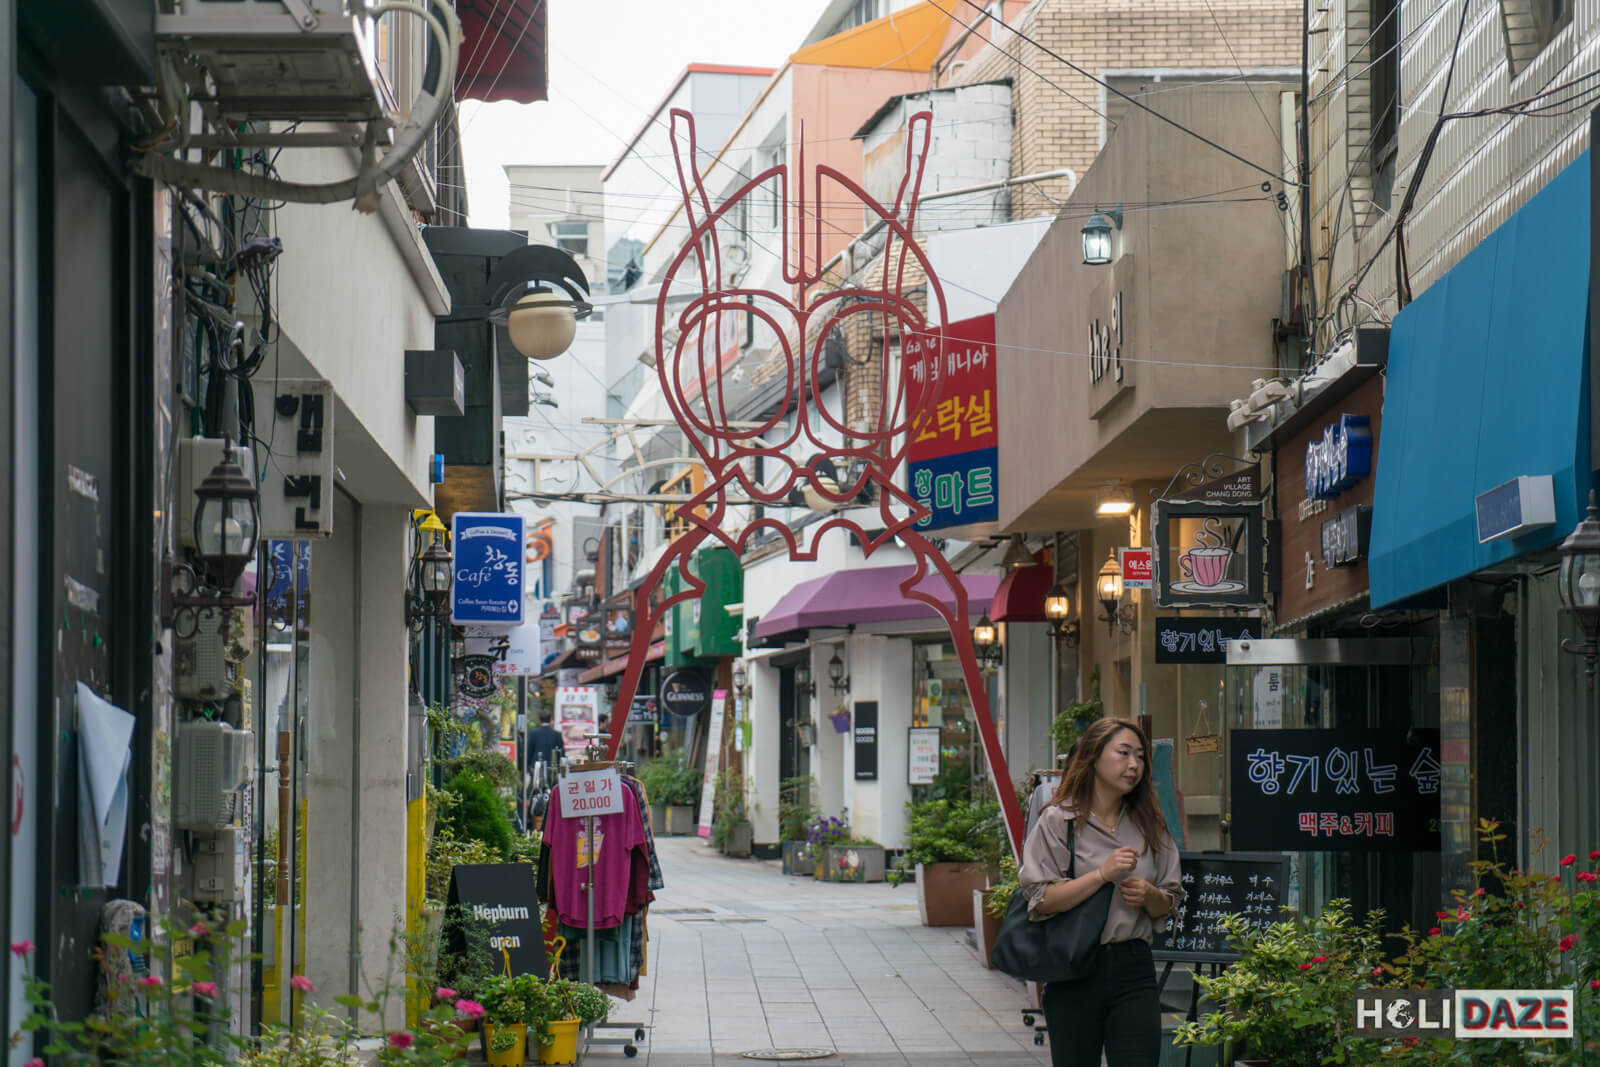 The iconic red alien at the entrance of Chang-dong Art Village